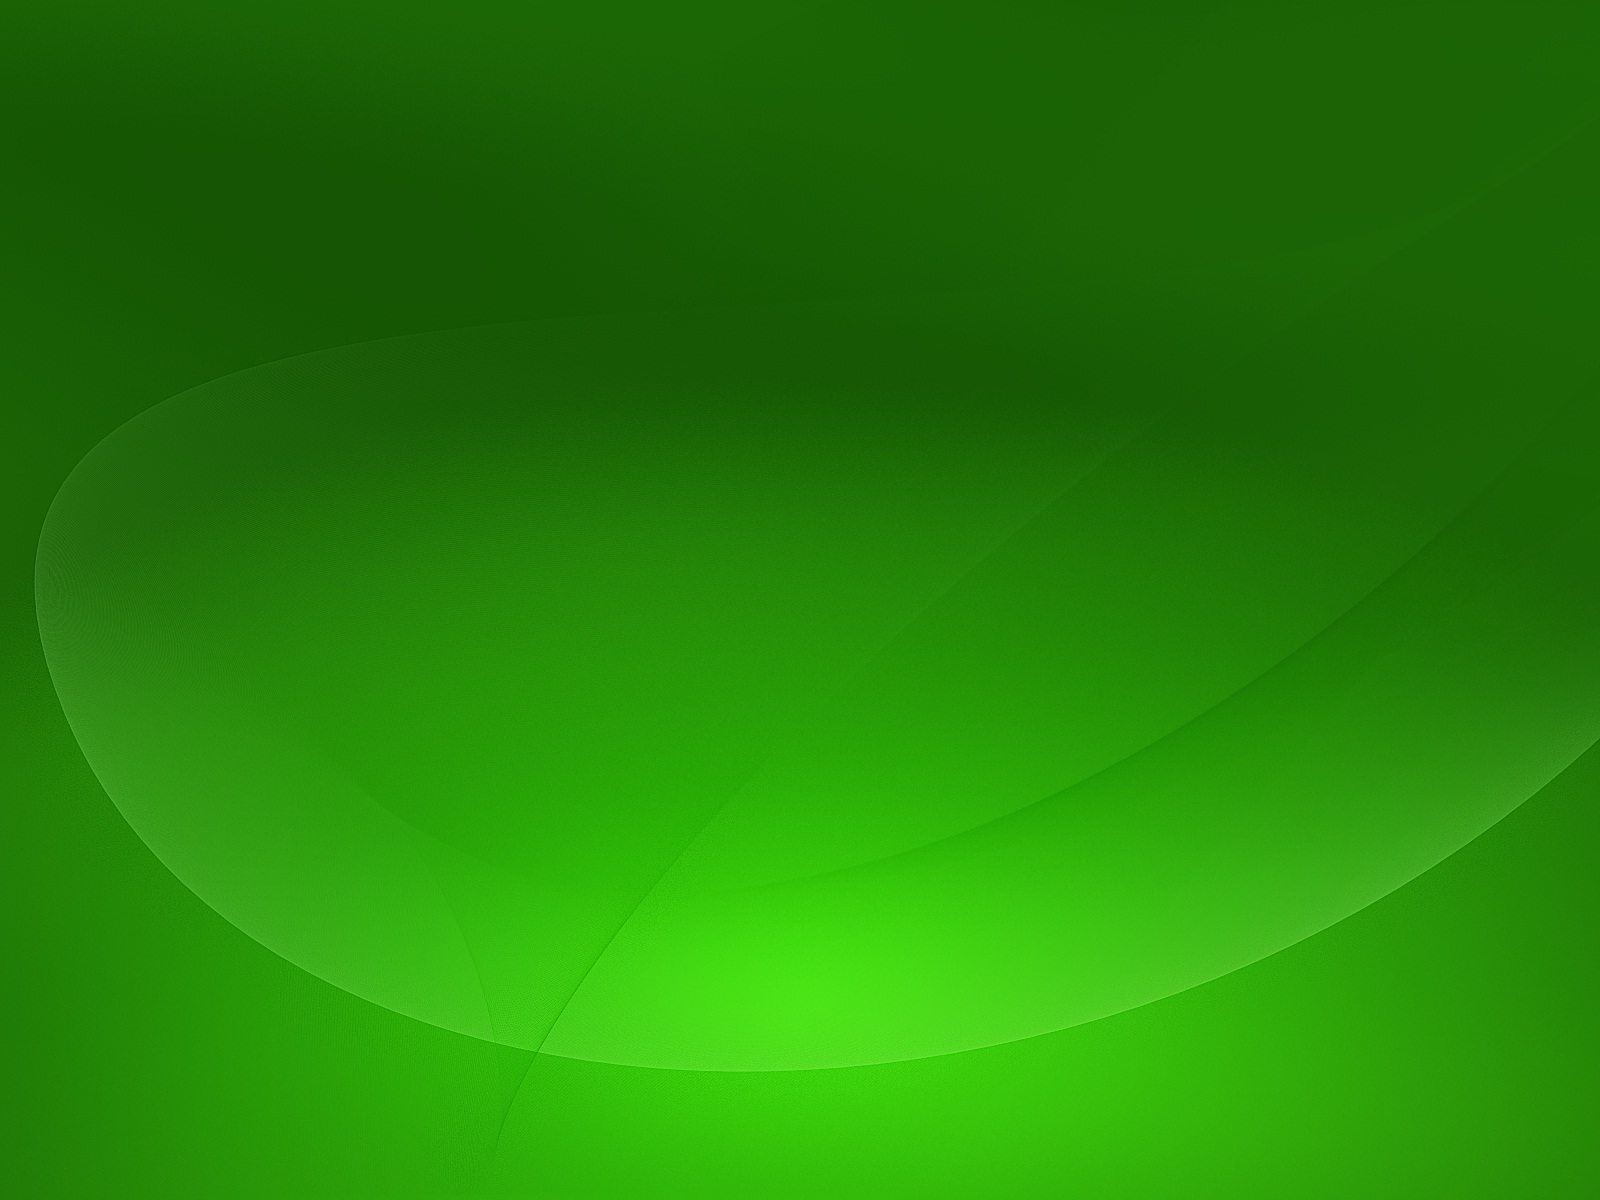 Hd wallpaper green - Green Wow Wallpapers Hd Wallpapers